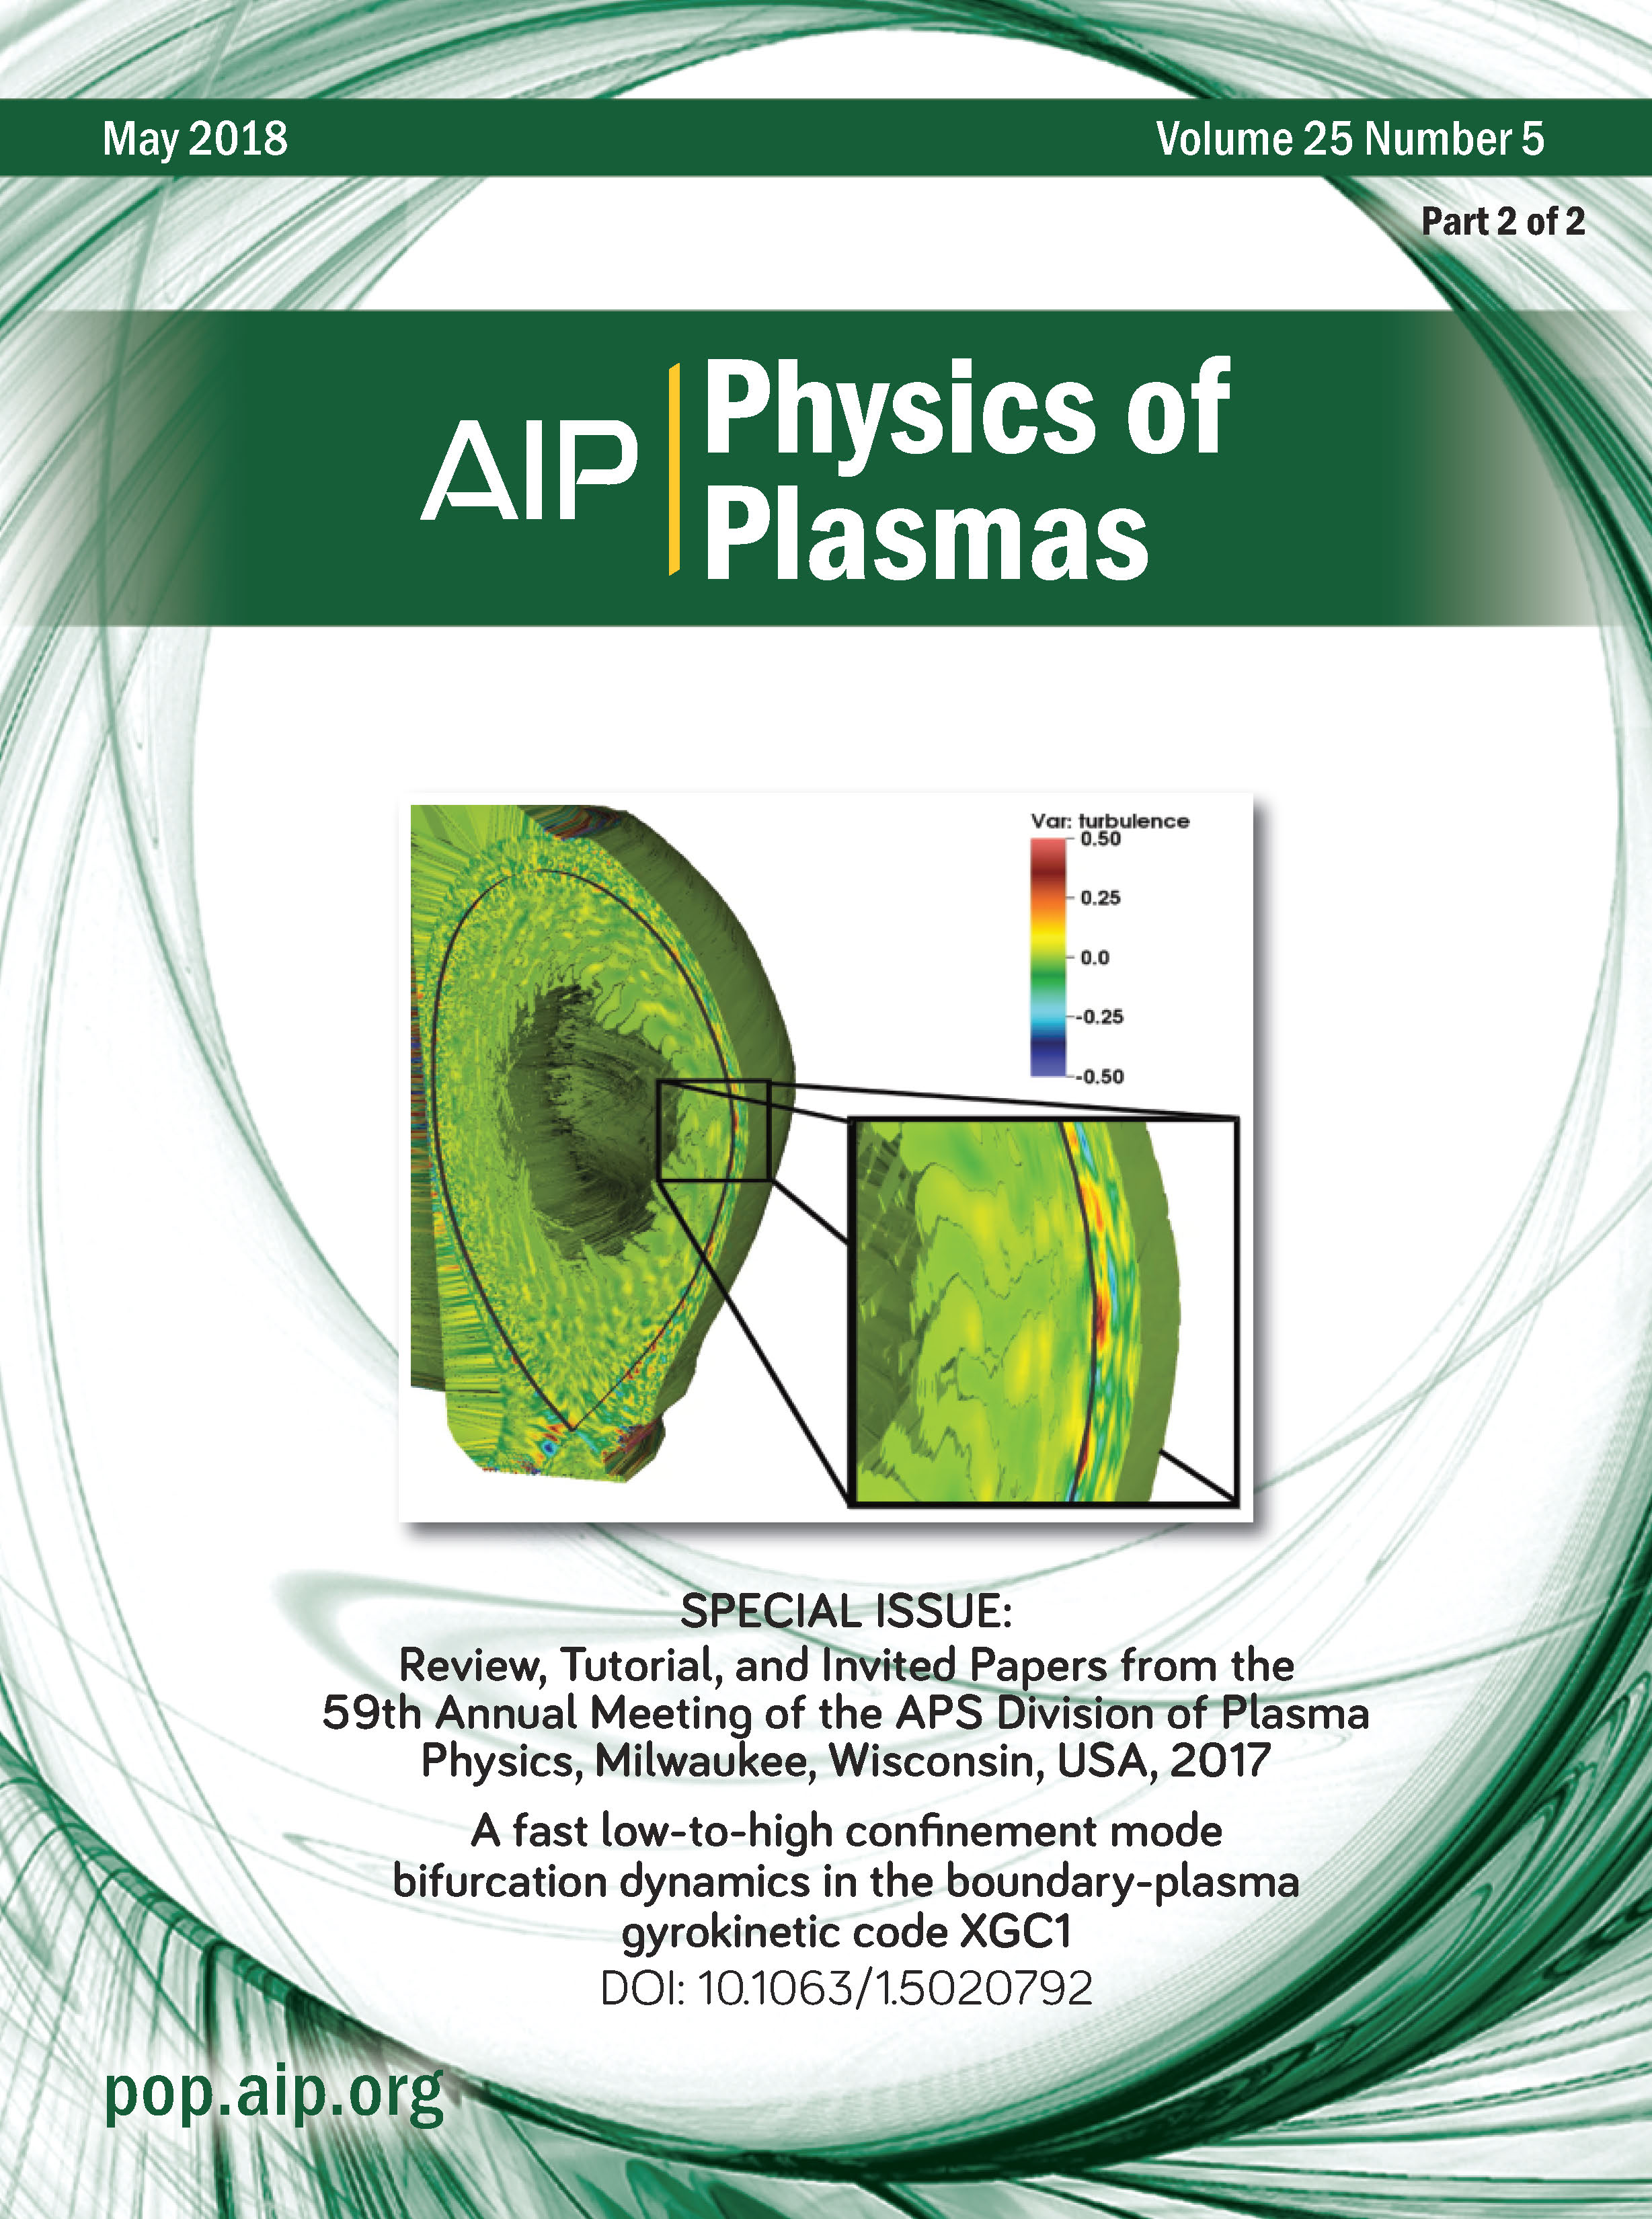 Laboratory space physics: Investigating the physics of space plasmas